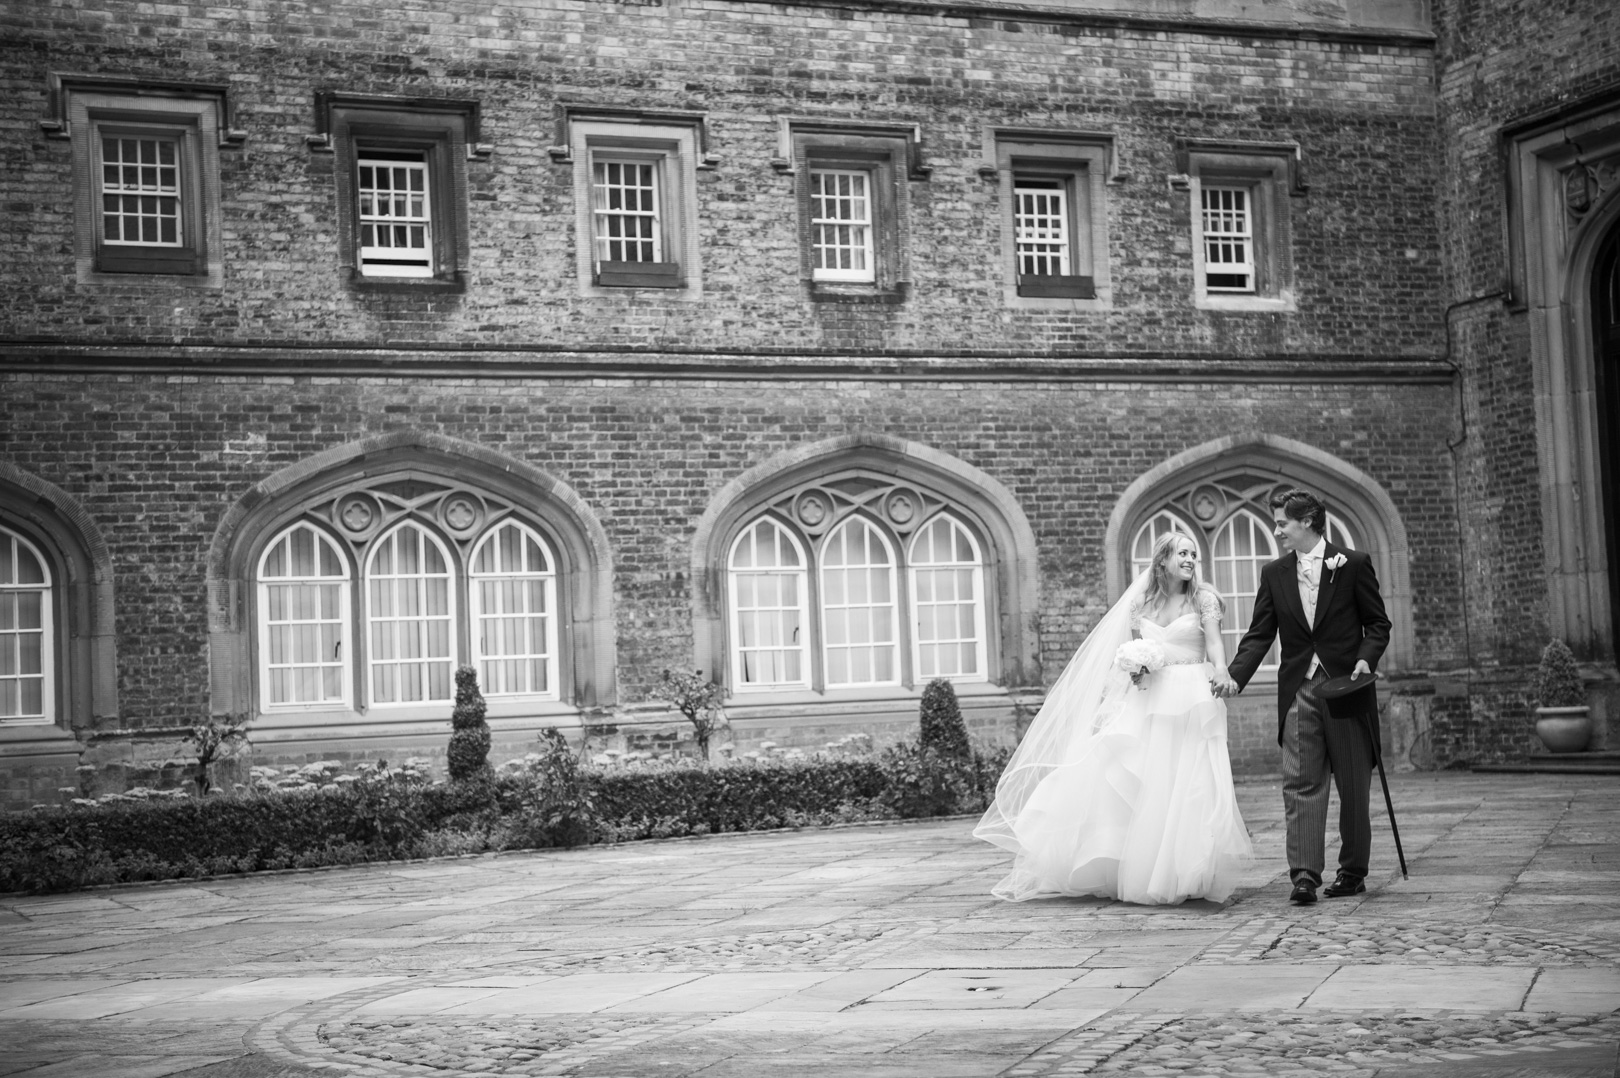 London Wedding Photographer Portfolio 1 of 26